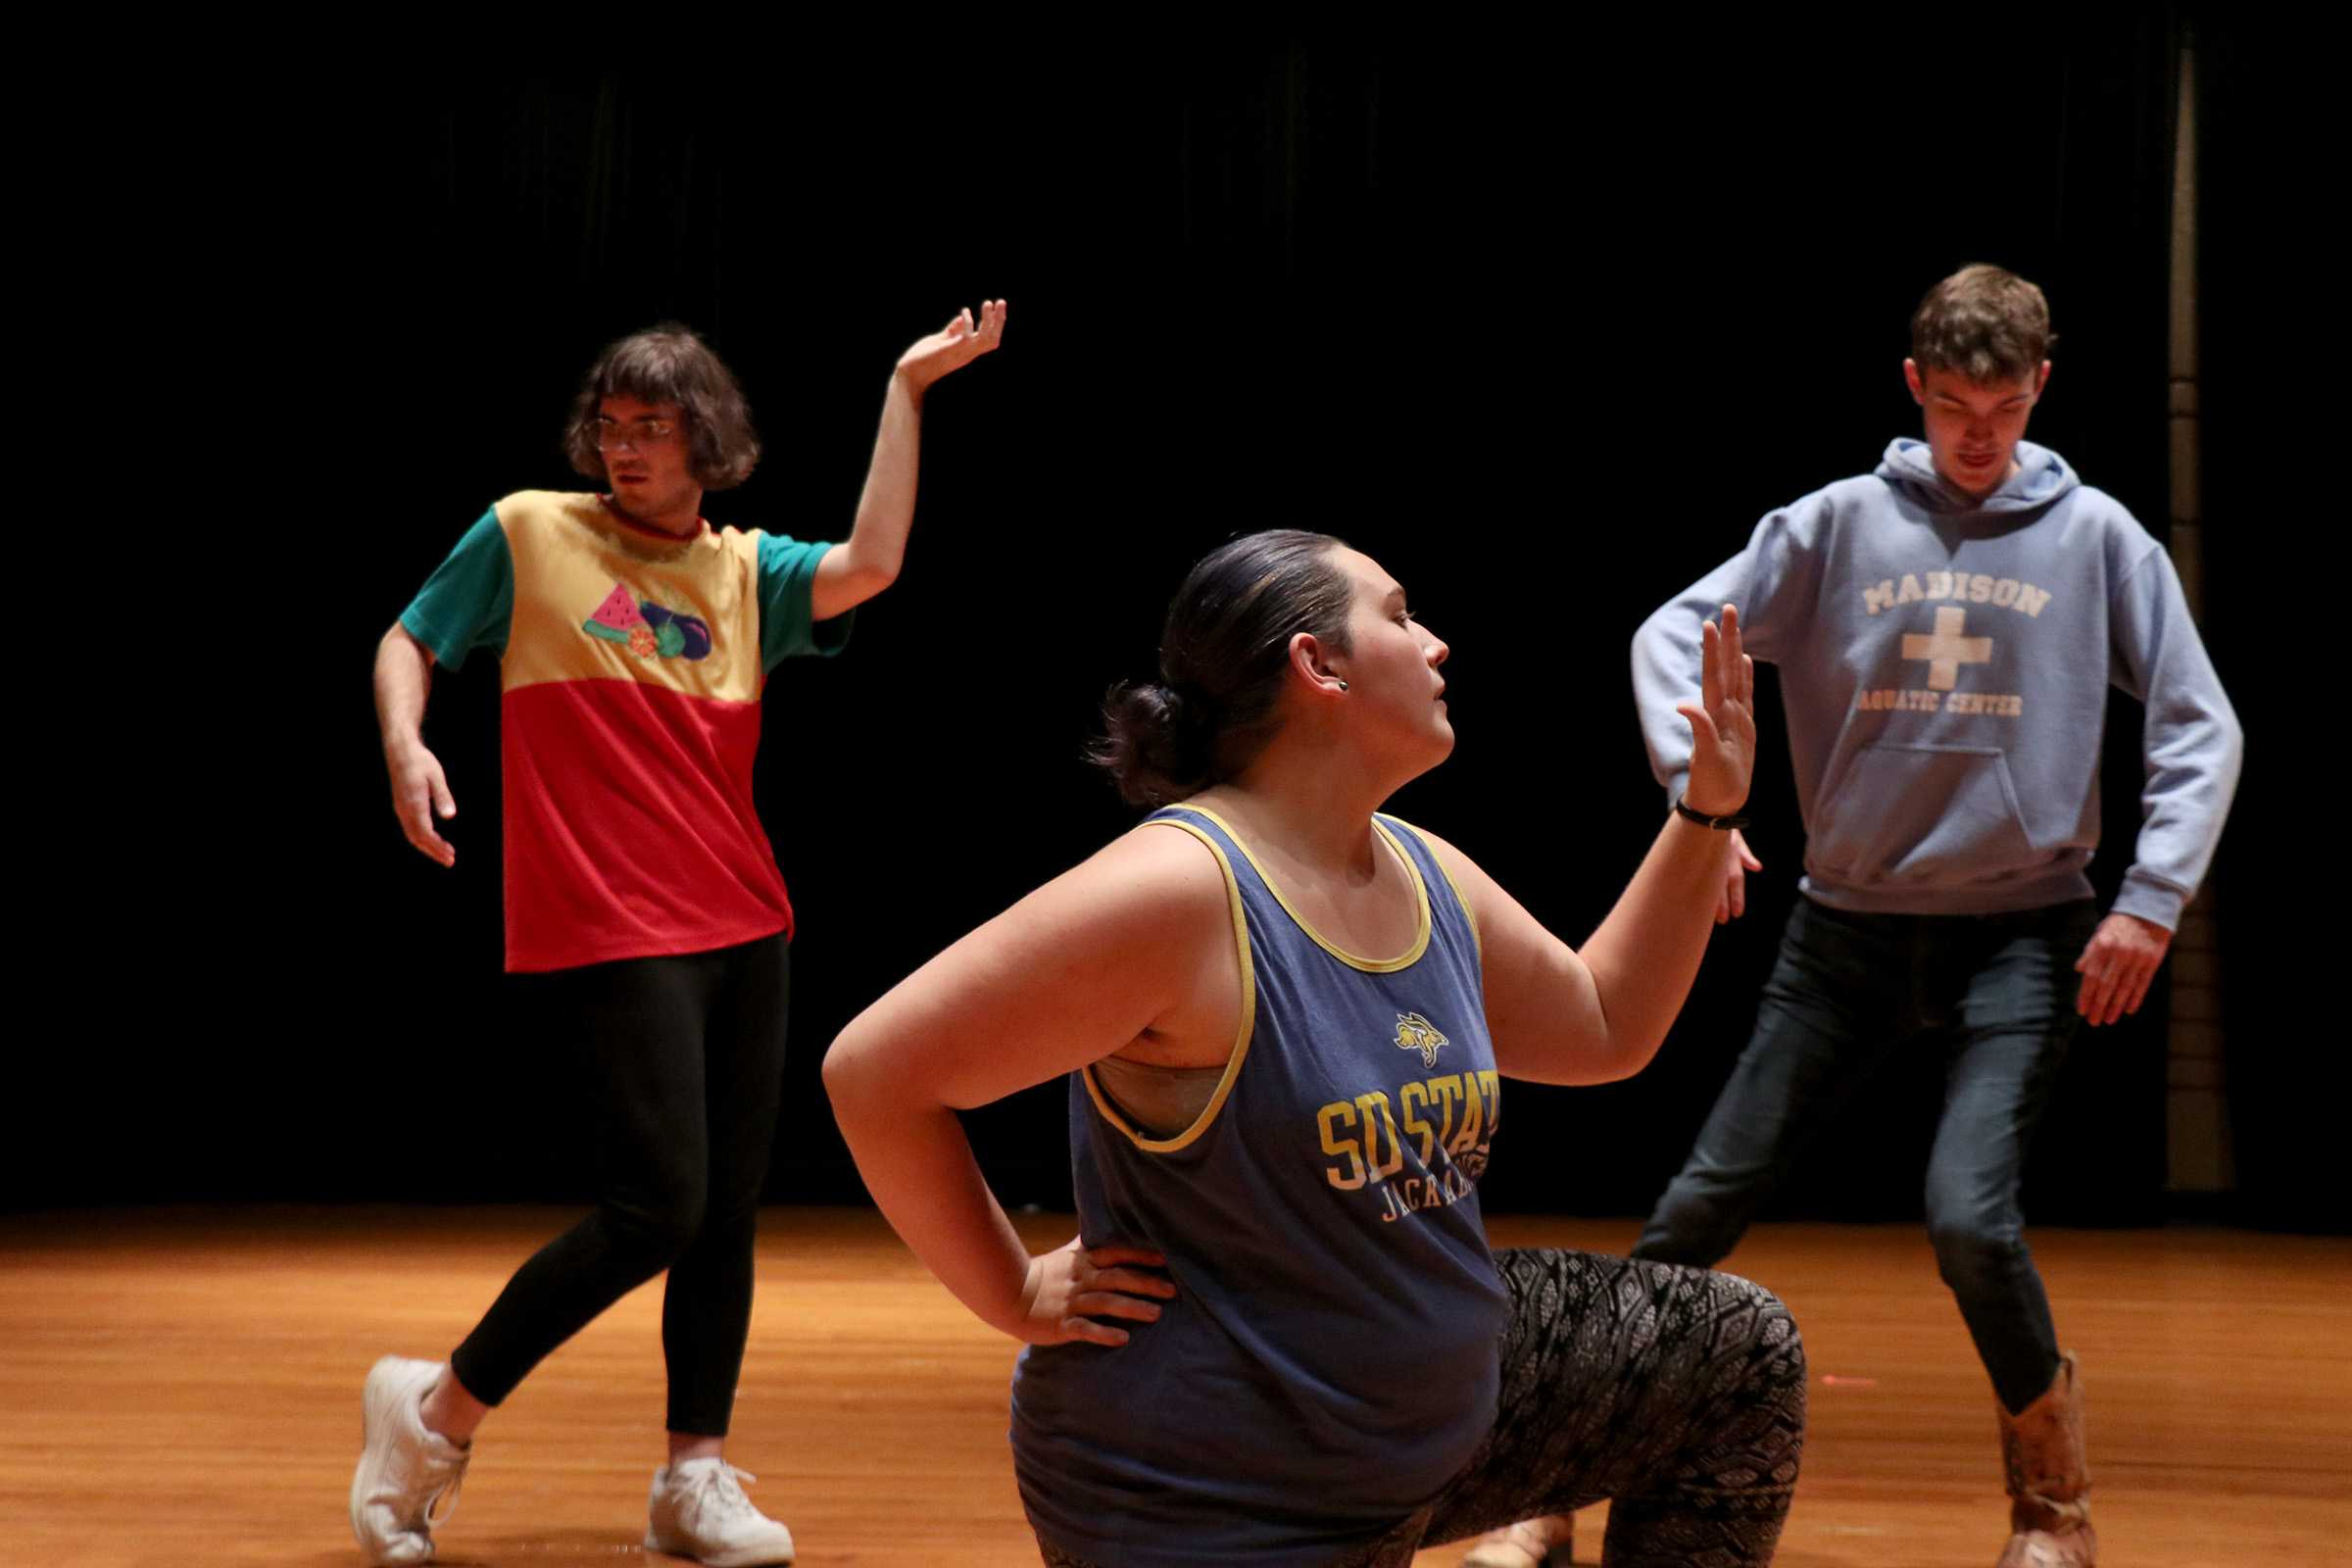 MIRANDA SAMPSON Mr. and Ms. Homelycoming participants learn the opener dance choreography at their dress rehearsal Tuesday, Oct. 9 in preparation for the Mr. and Ms. Homelycoming competition competition in the Performing Arts Center at 7 p.m. Wednesday, Oct. 10.